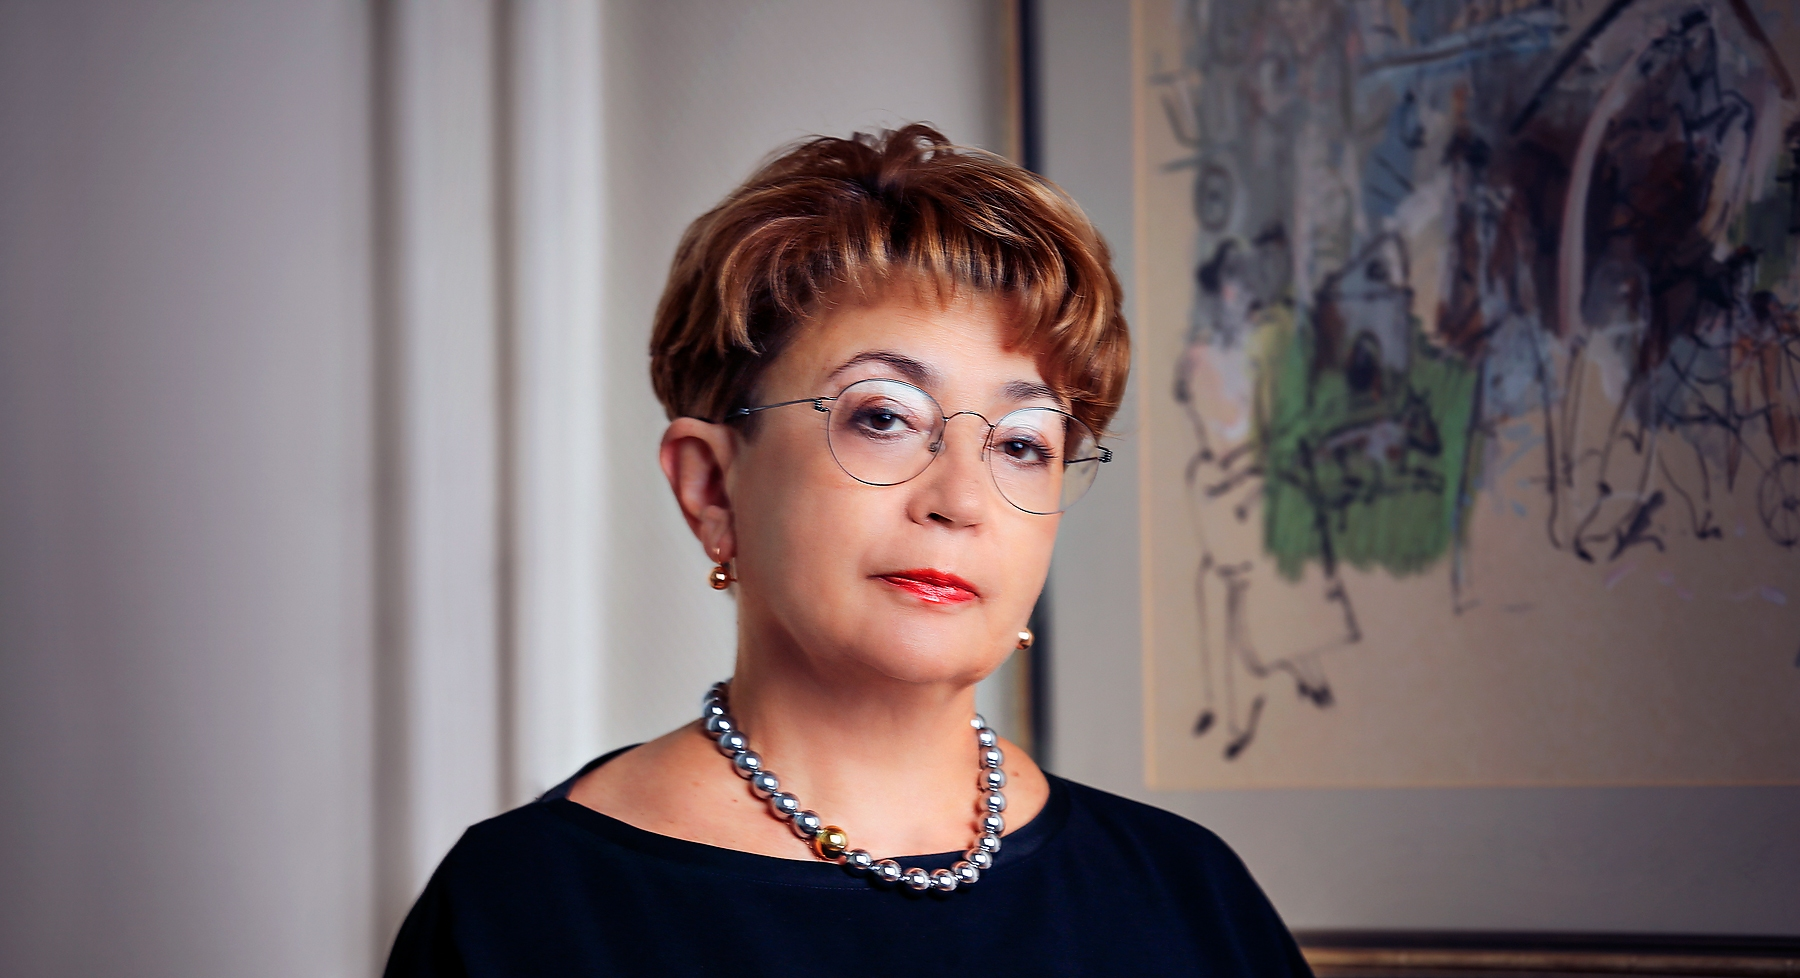 A statement by Faina Kukliansky, chairperson of the Lithuanian Jewish Community, on the halting of work at a grave site uncovered during construction